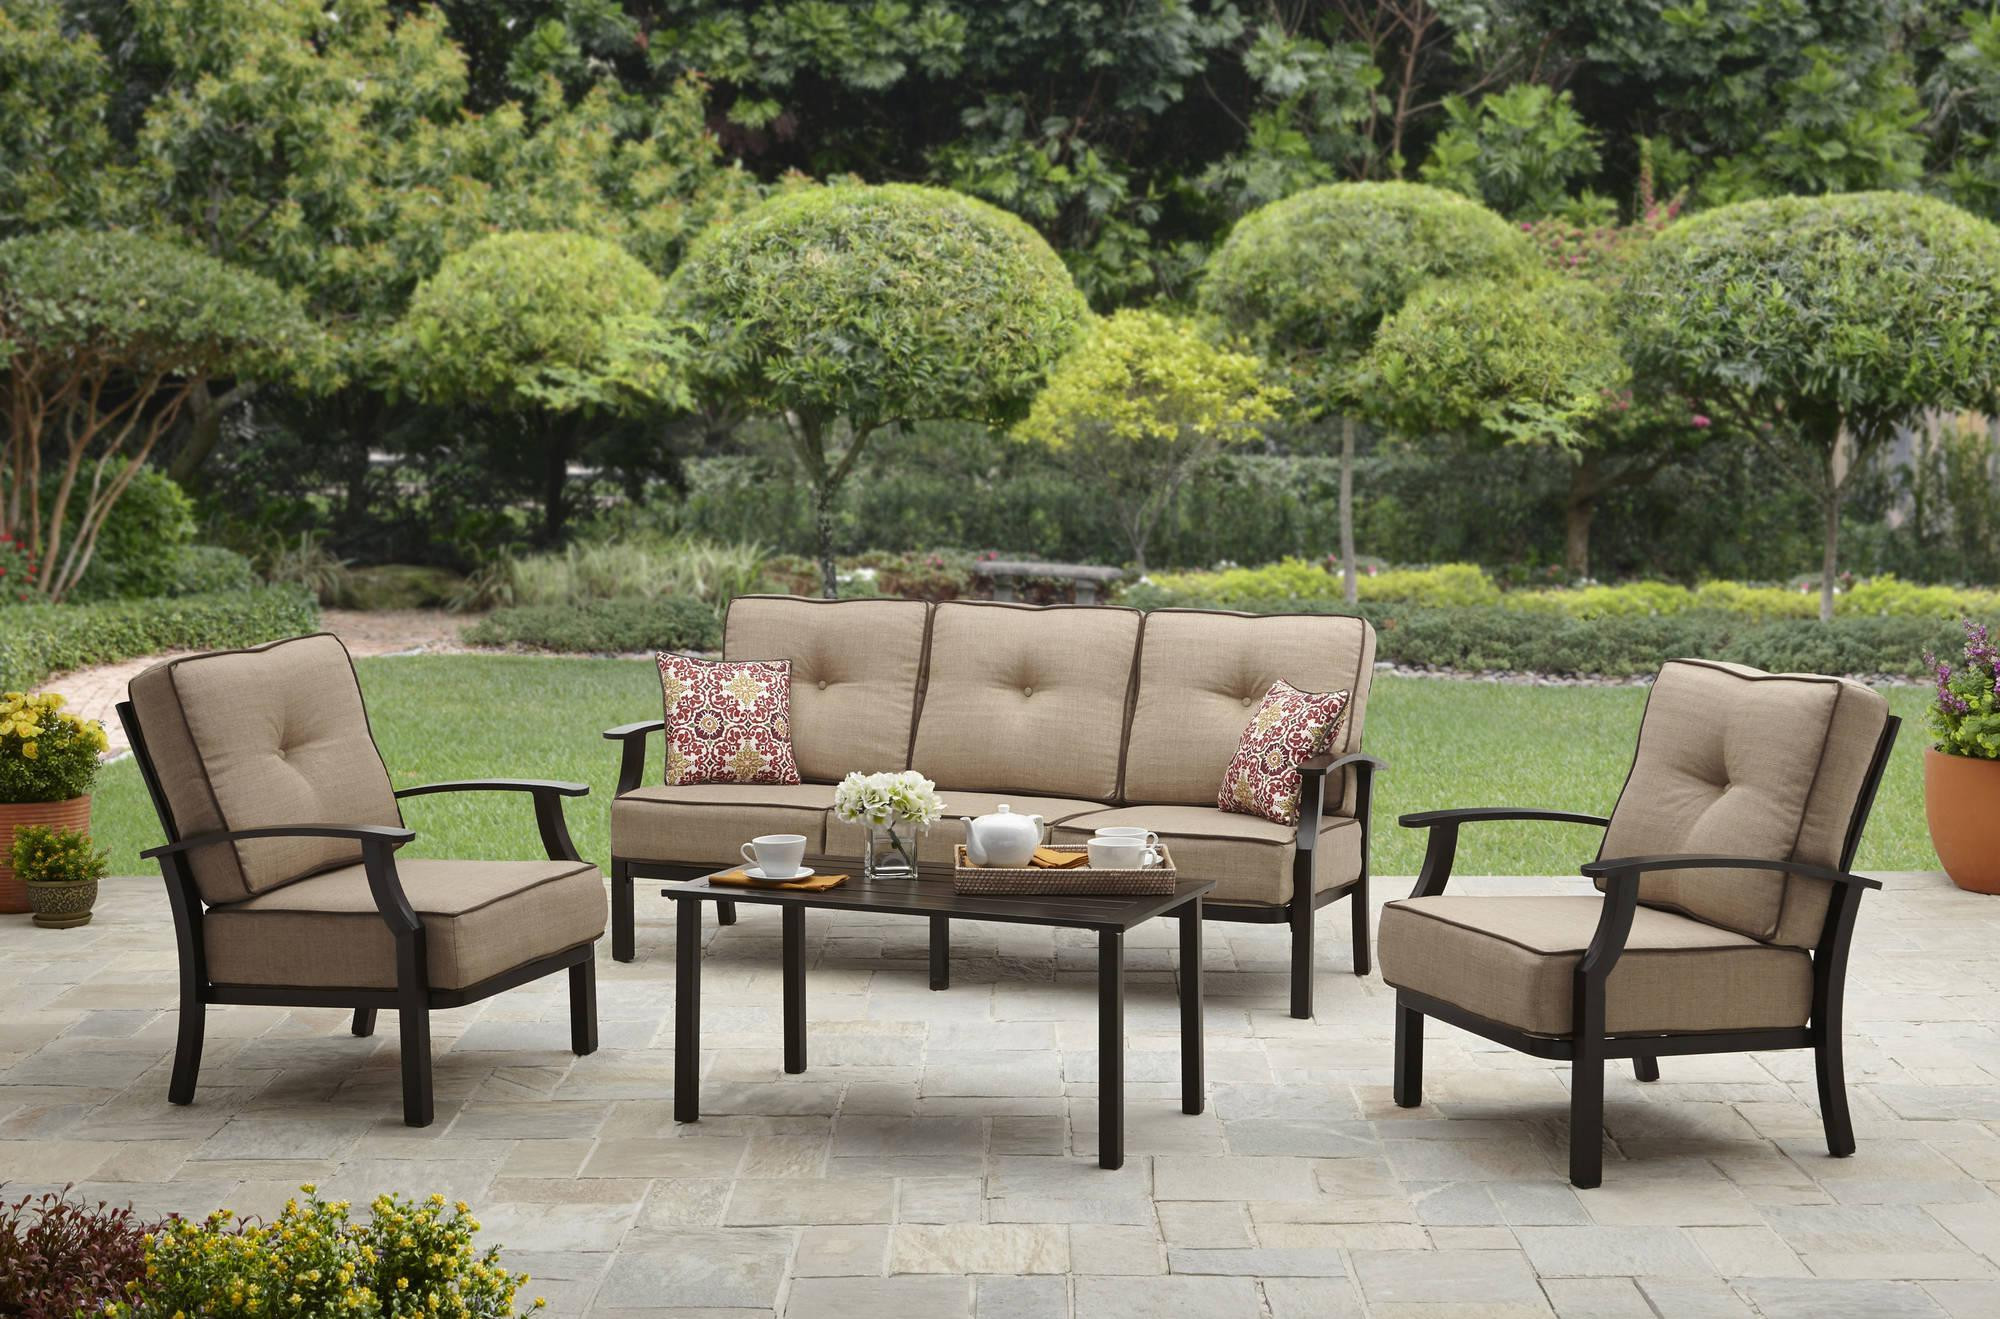 Best ideas about Patio Furniture On Sale . Save or Pin Art Van Outdoor Furniture for Perfect Patio Furnitures Now.